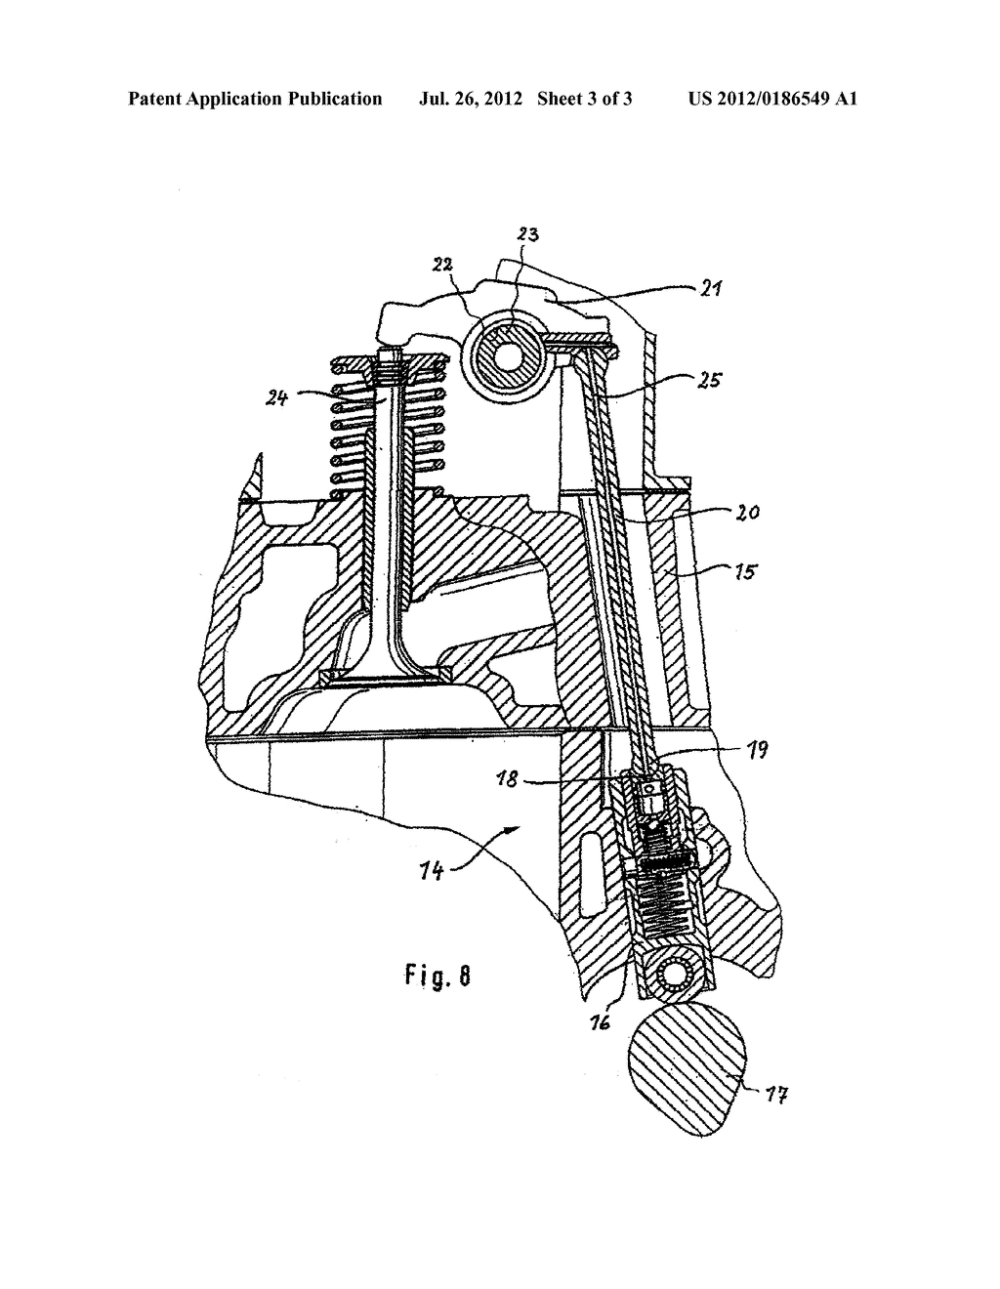 medium resolution of oscillating lever in a valve train of an internal combustion engine diagram schematic and image 04